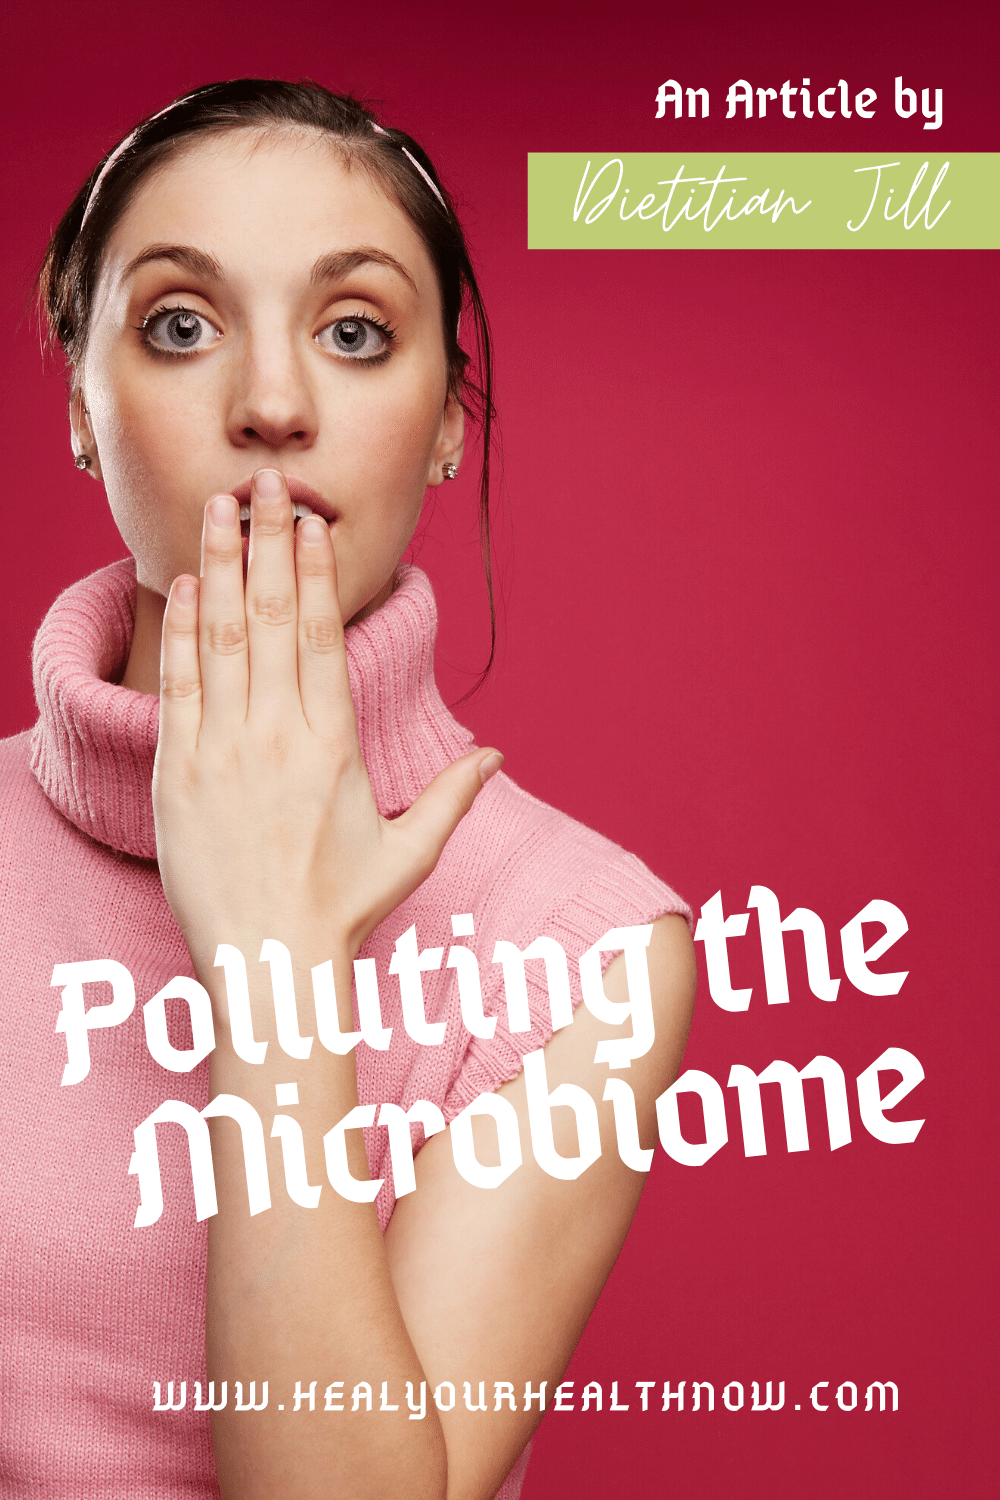 Polluting the Microbiome